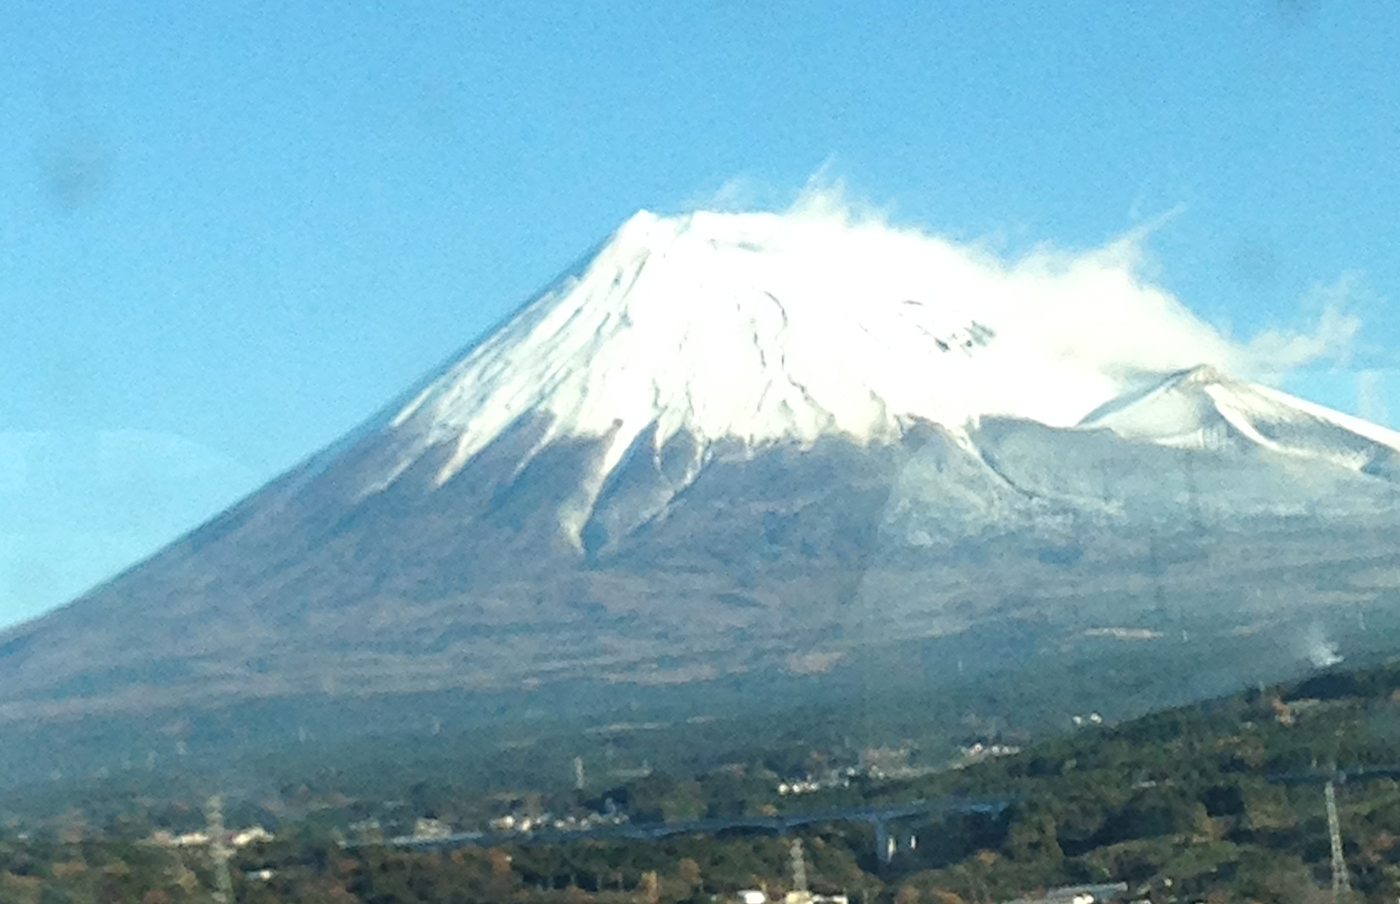 Mt. Fuji from the Tokaido Shinkansen